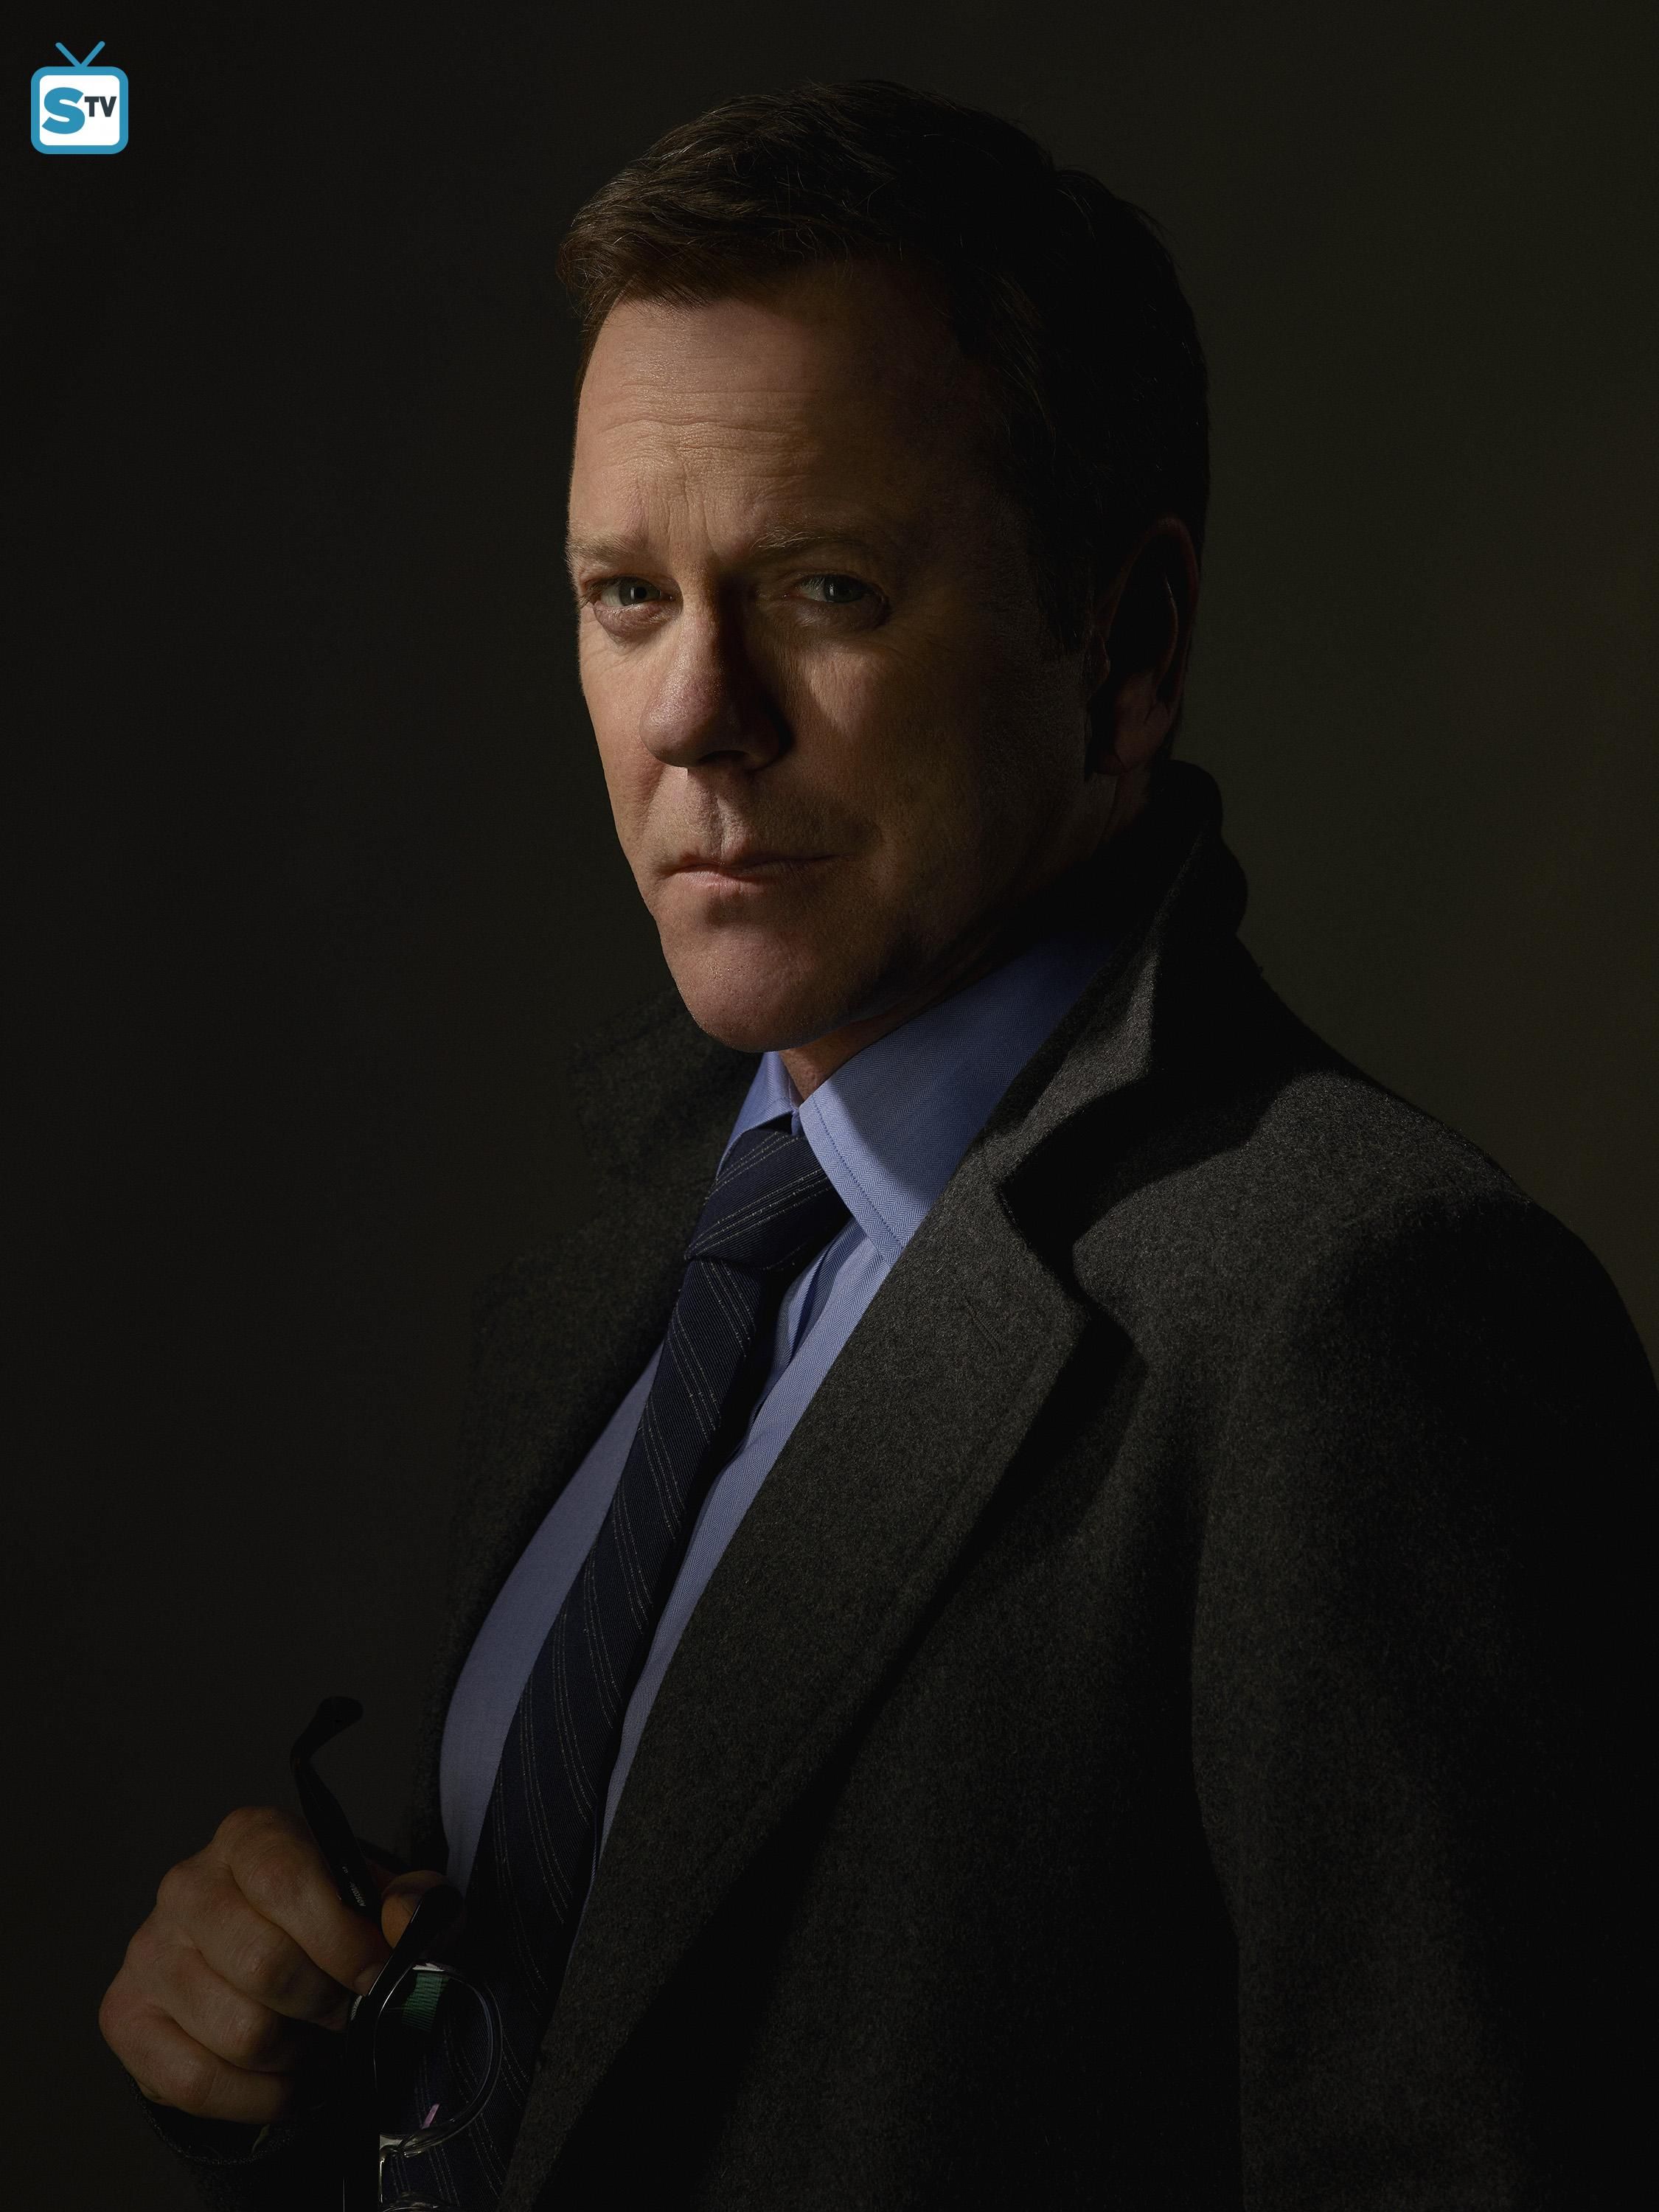 -Designated-Survivor-Character-Portrait-Tom-Kirkman-designated-survivor-39619239-2250-3000